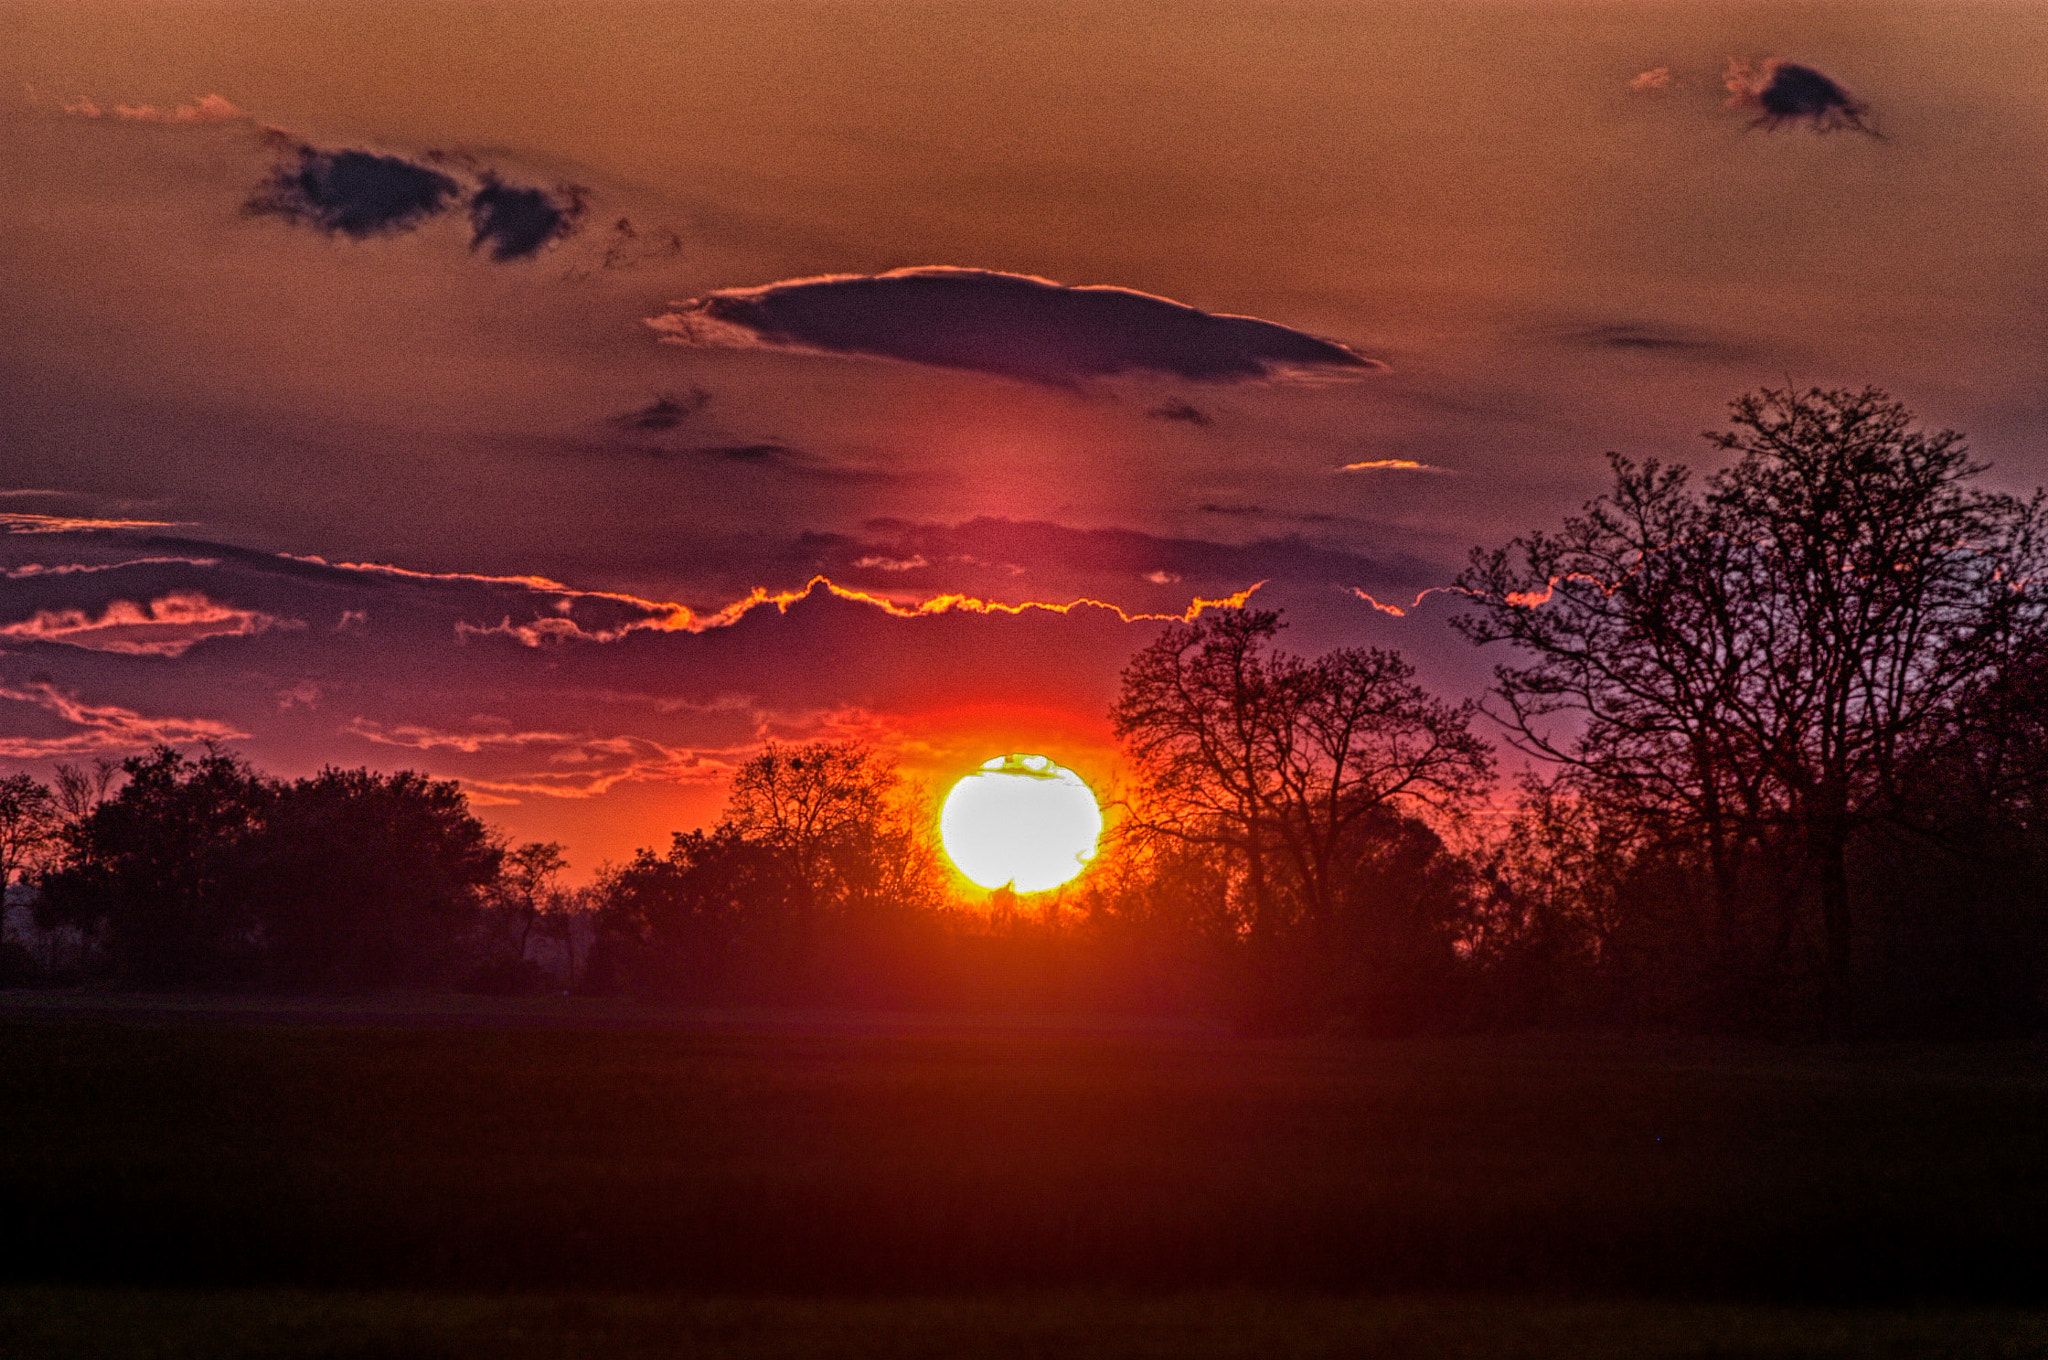 Photograph Sunset by Edmund Orzsik on 500px